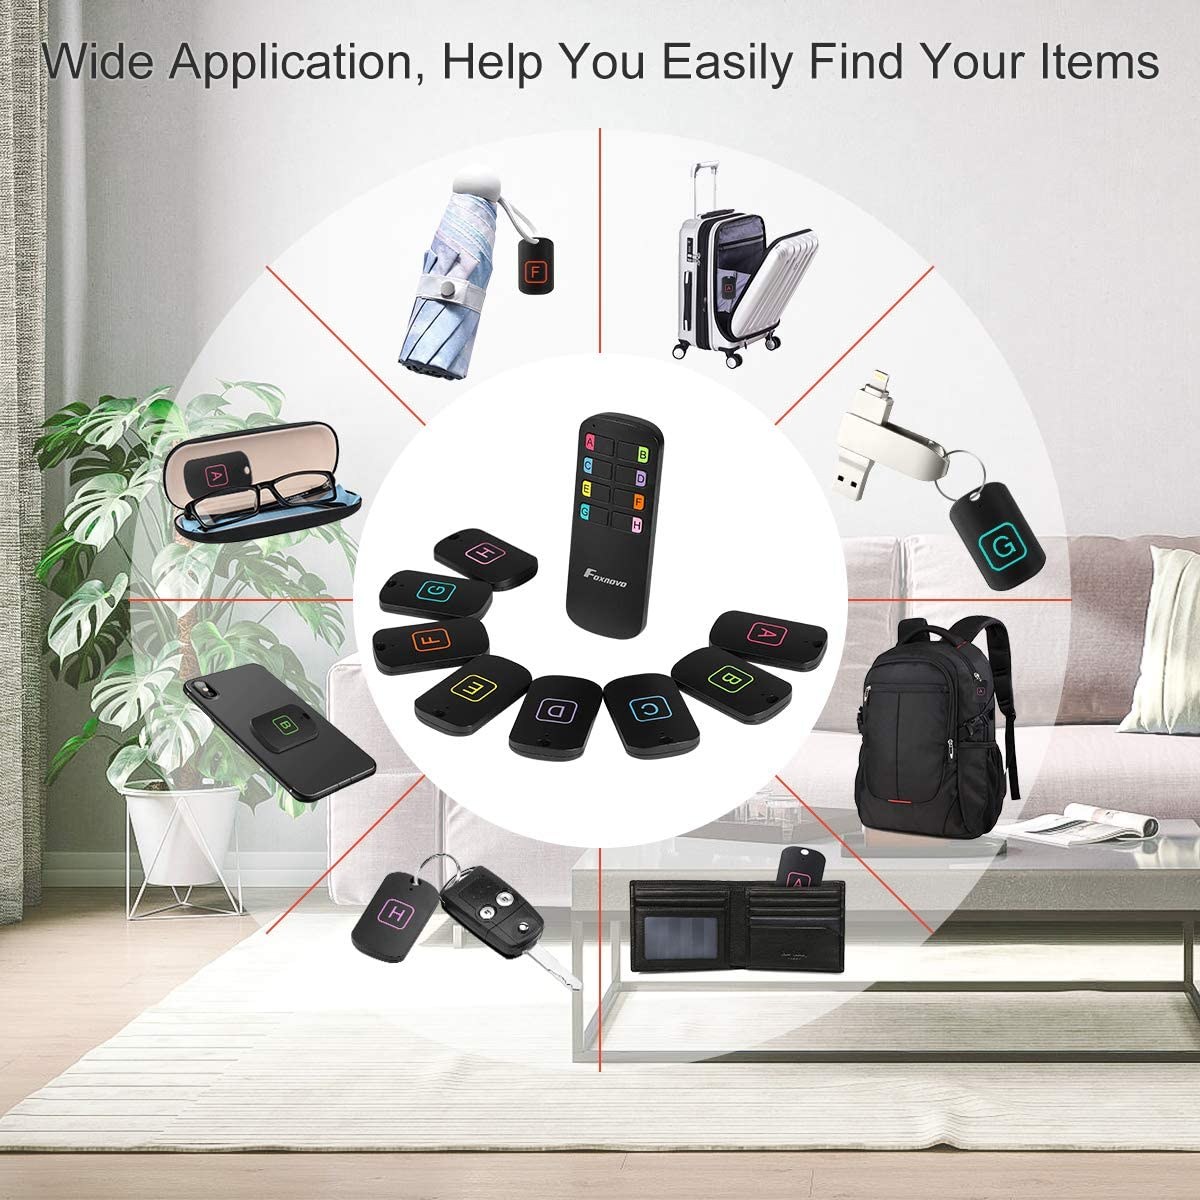 Key Finder Locator, 164FT Remote 100 dB Beeping Sound Wireless Long Lasting Batteries Wallet Key Phone Glasses Tracker